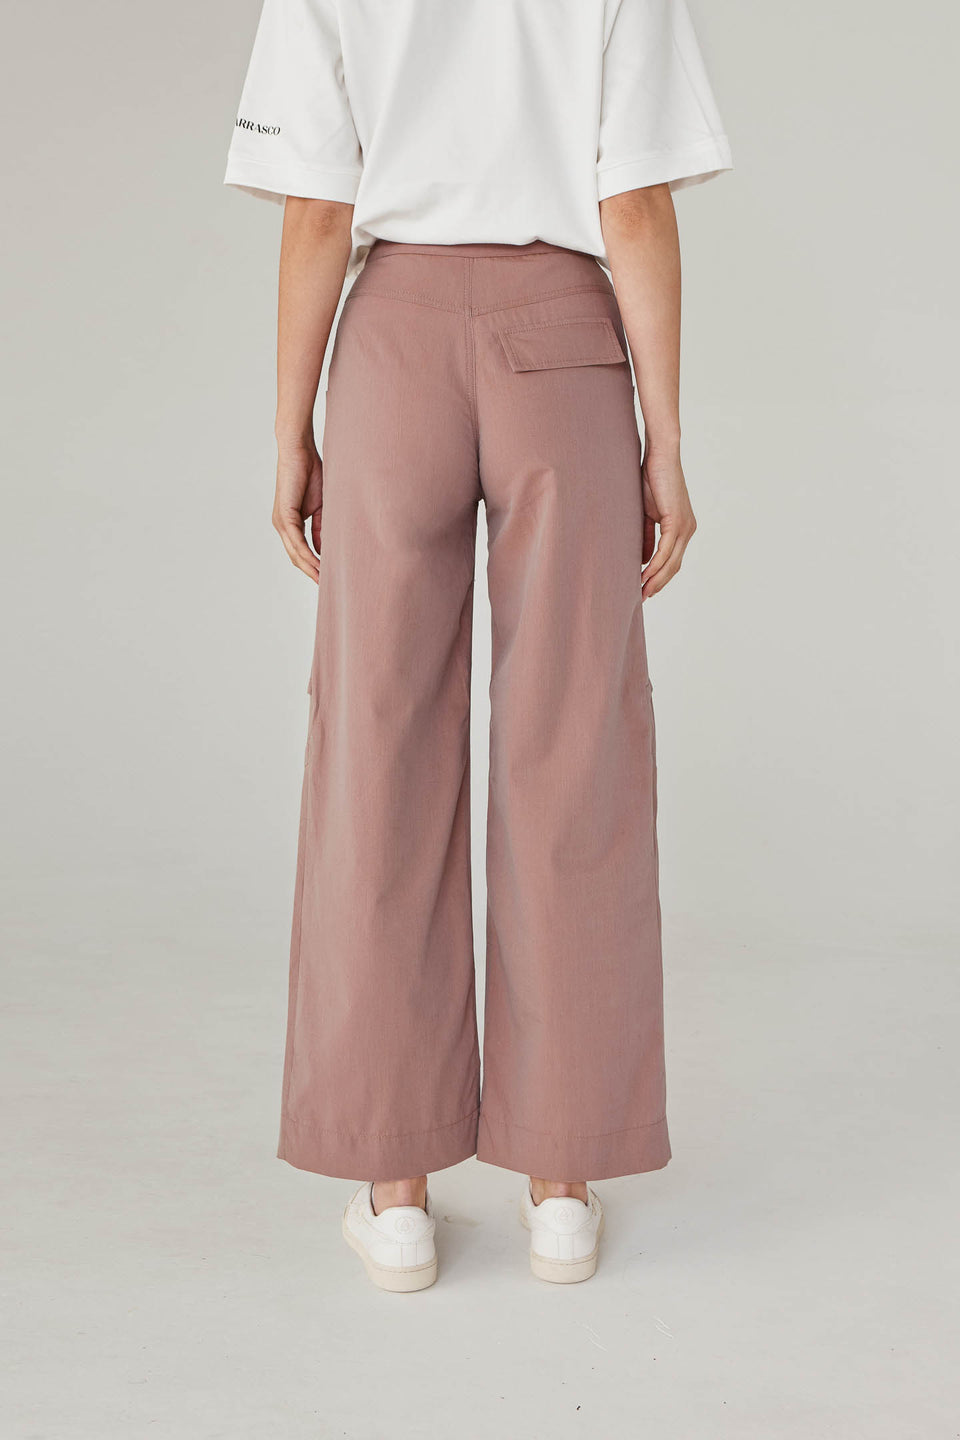 CLIPPED TROUSERS